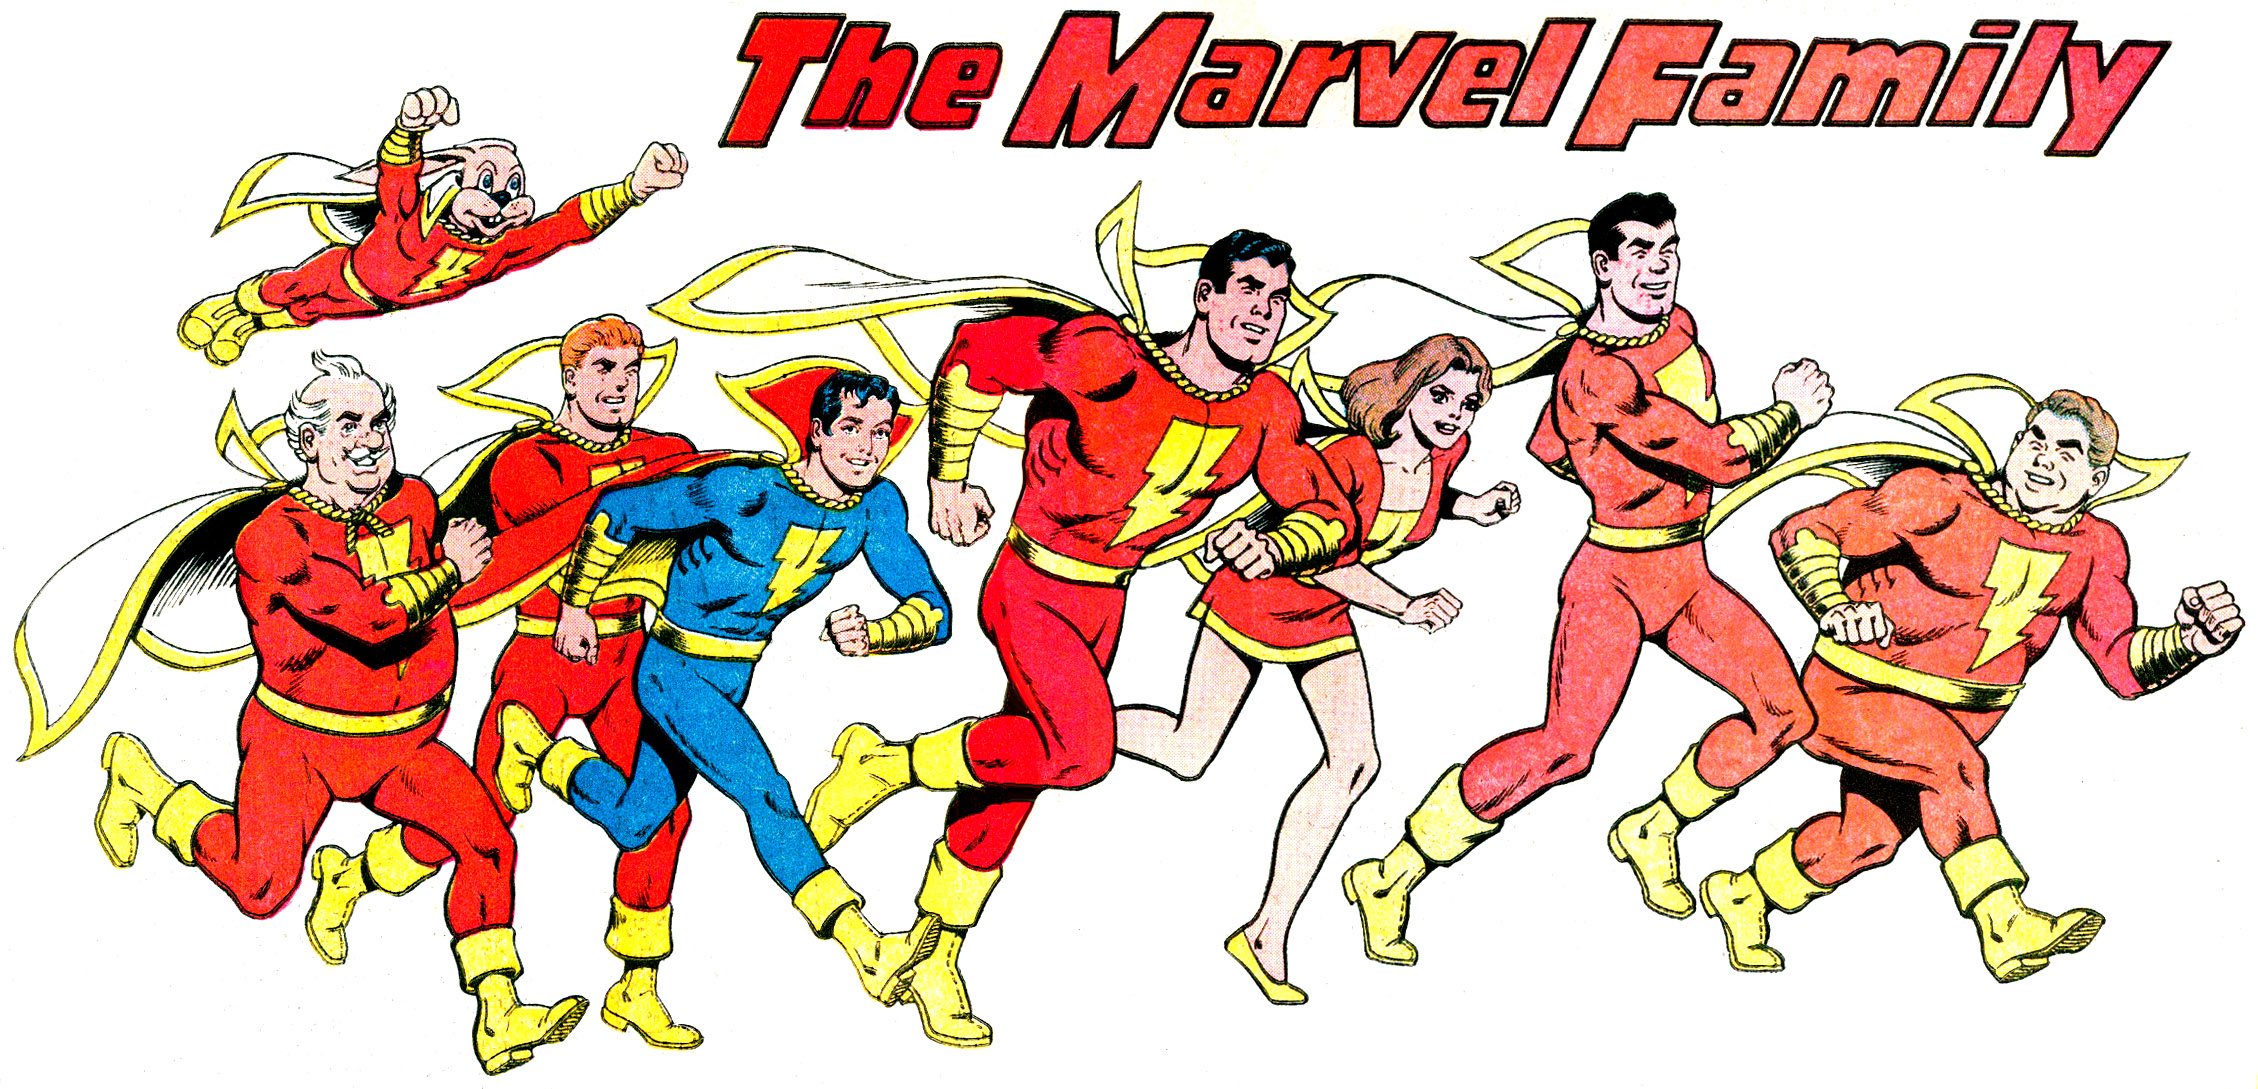 Captain Marvel Aka Shazam Dc Comics Pre Crisis Era